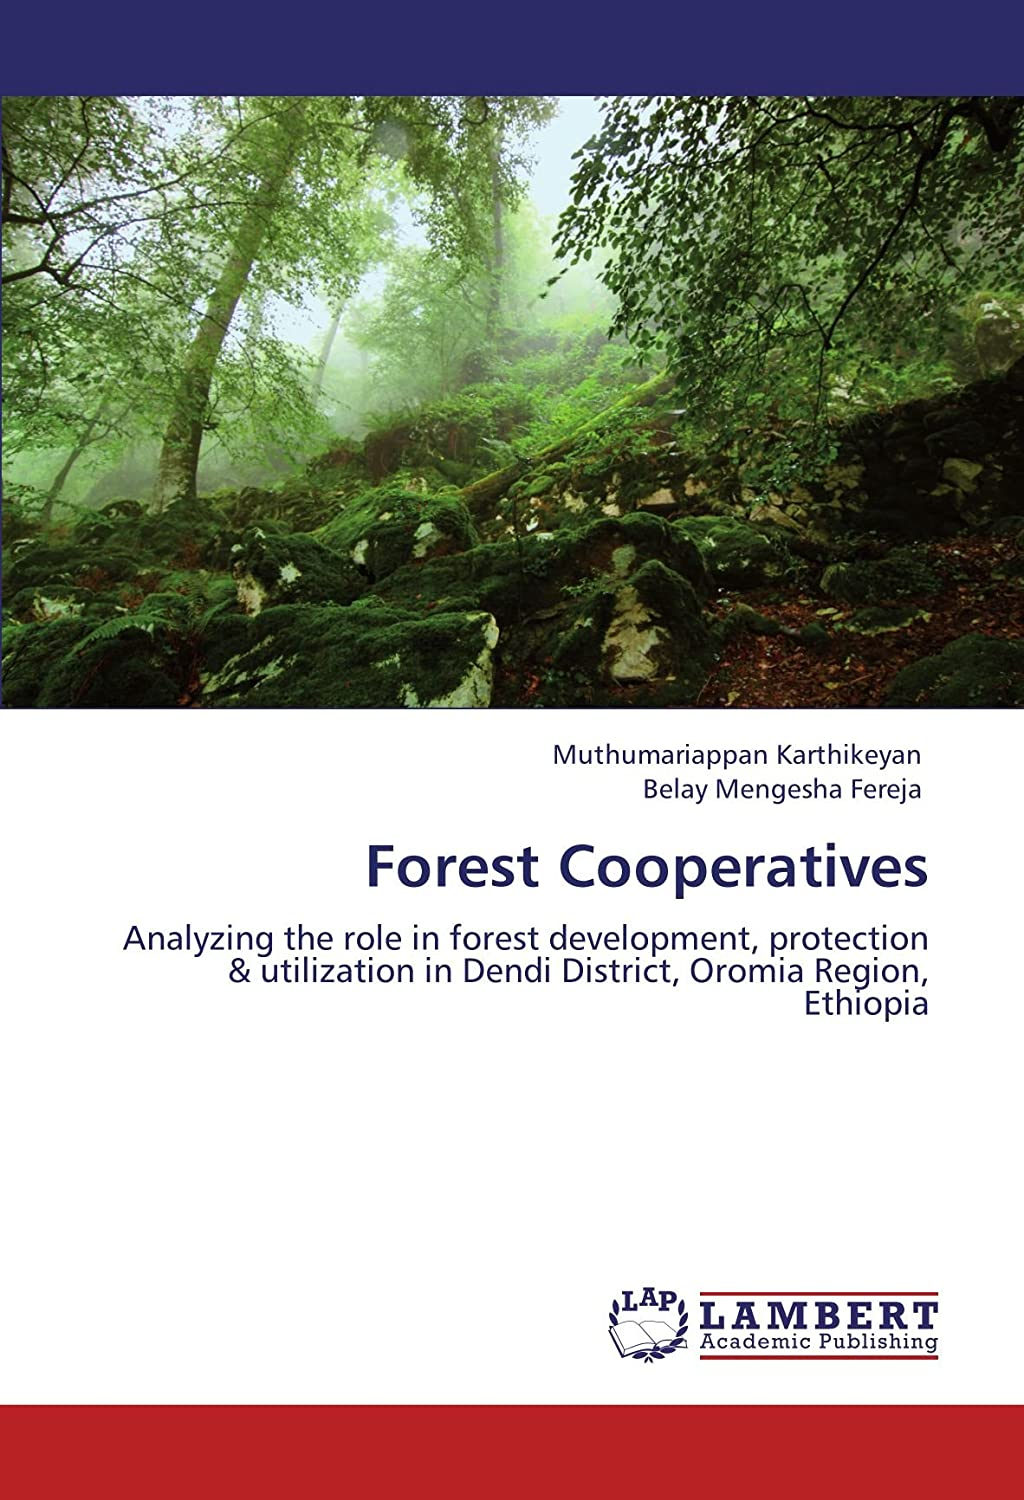 Forest Cooperatives